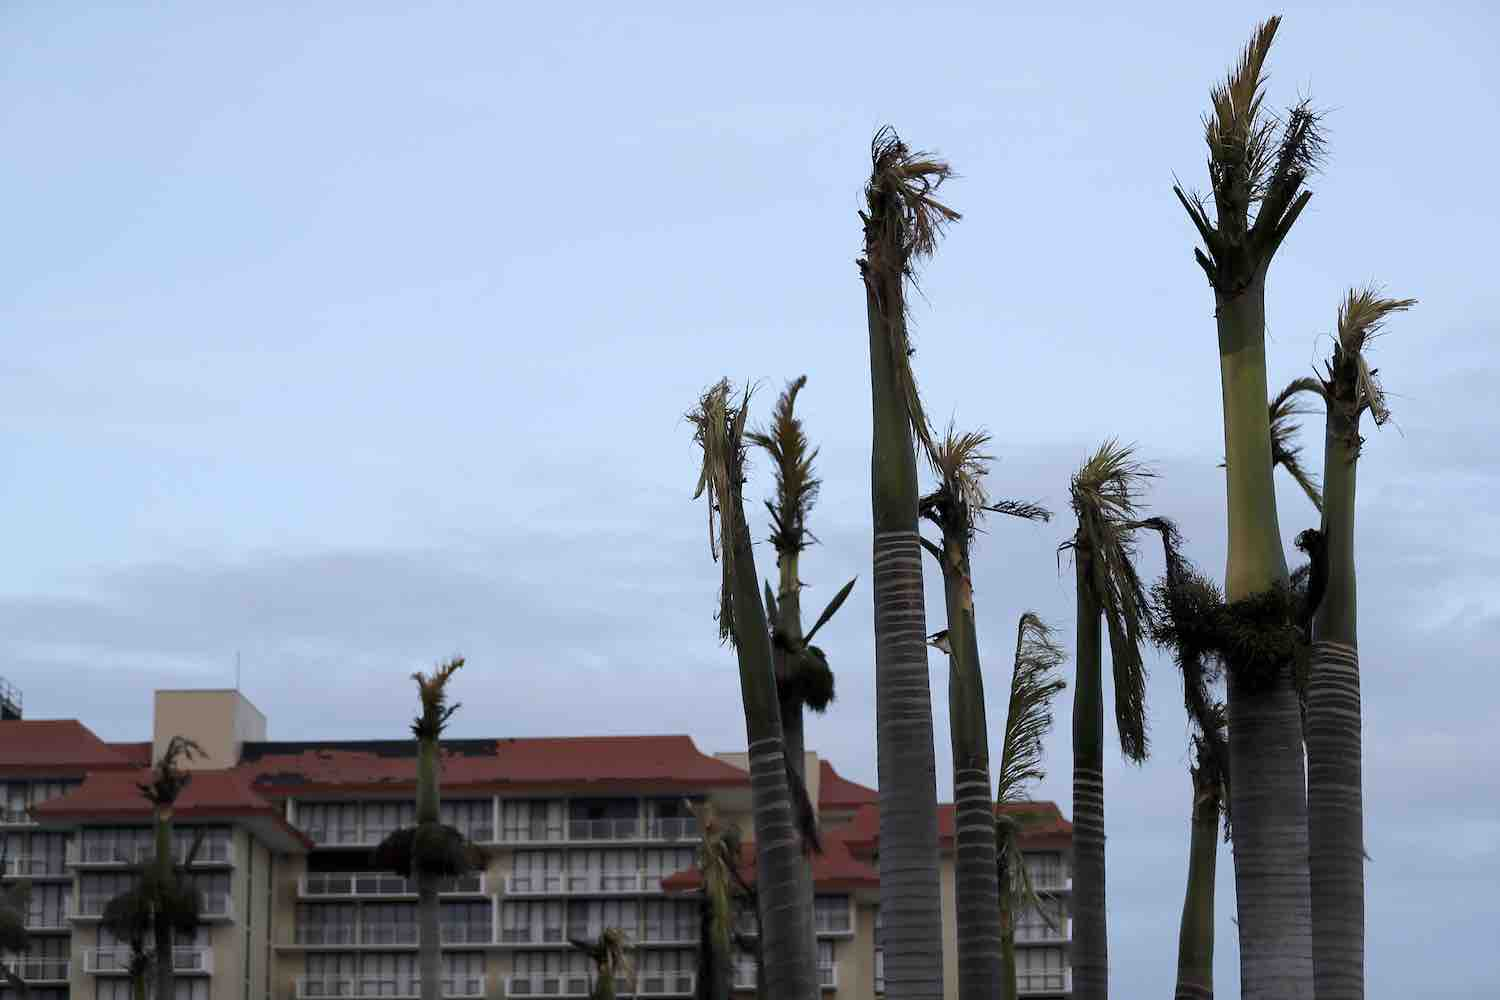 "<div class=""meta image-caption""><div class=""origin-logo origin-image kgo""><span>kgo</span></div><span class=""caption-text"">Palm trees stand ripped of their fronds in the aftermath of Hurricane Irma in Marco Island, Fla., Monday, Sept. 11, 2017 (AP Photo/David Goldman)</span></div>"